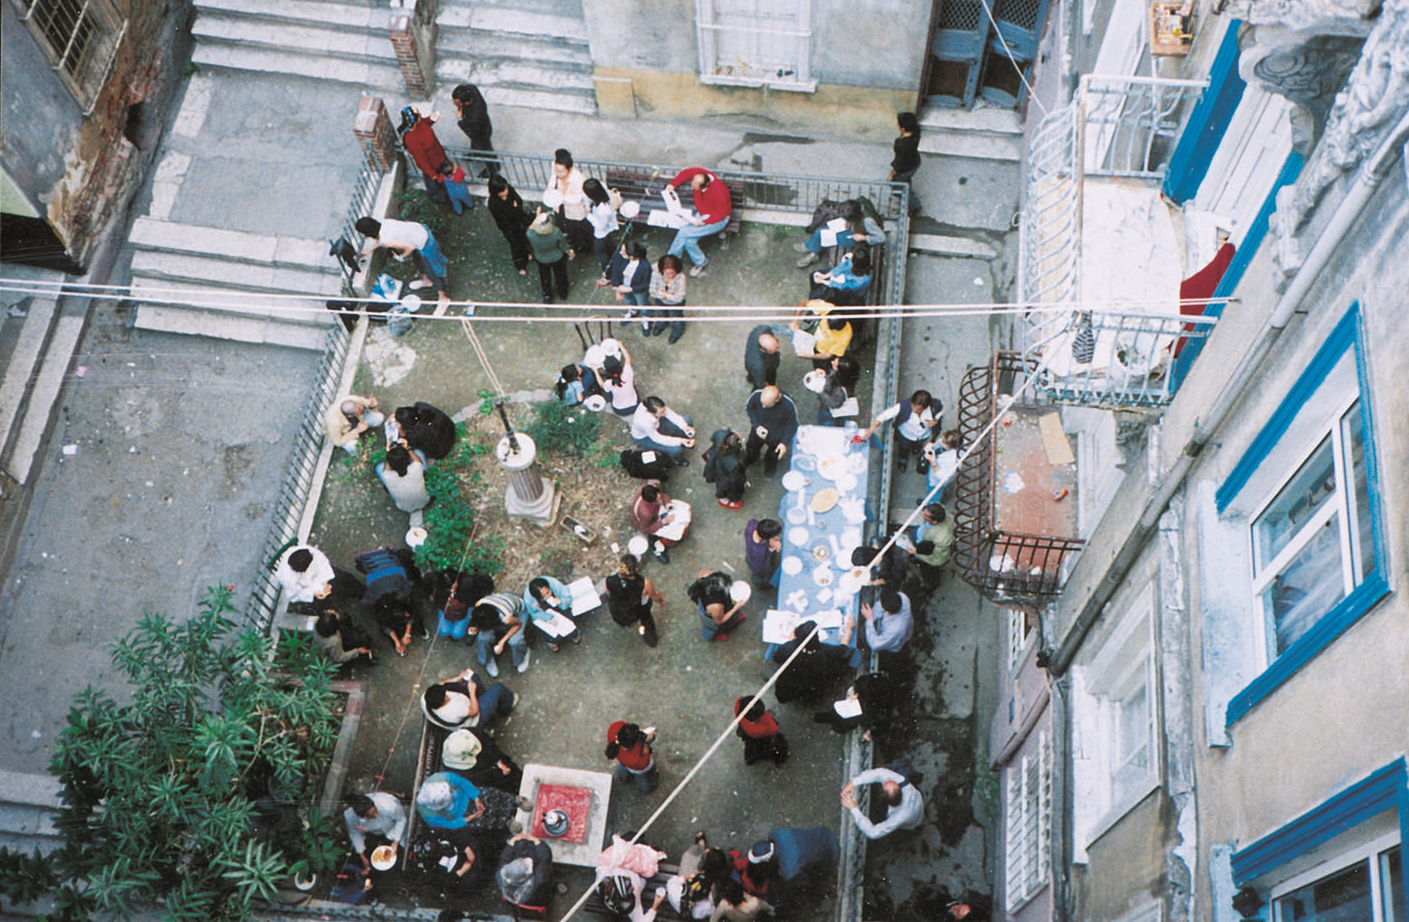 Galata, September 20th, 2003.Oda Projesi's courtyard during «COURSE» a project by Naz Erayda in the 8th Istanbul Biennale 'Poetic Justice' and «ADA » project by Oda Projesi.